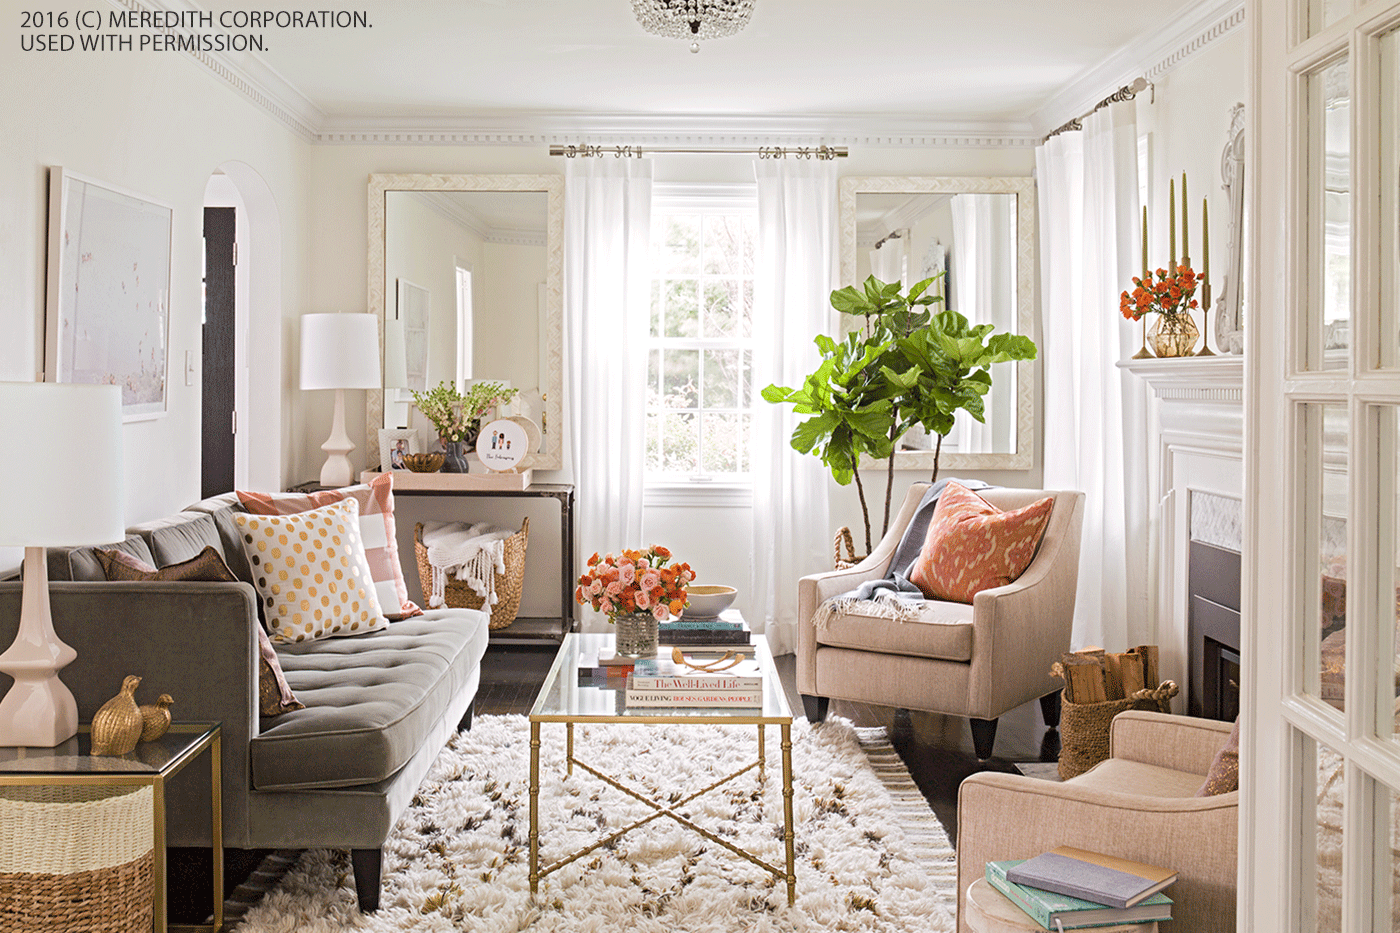 Living Room Solutions - How to Design Small Spaces With Style on Small Living Room Decorating Ideas  id=12990